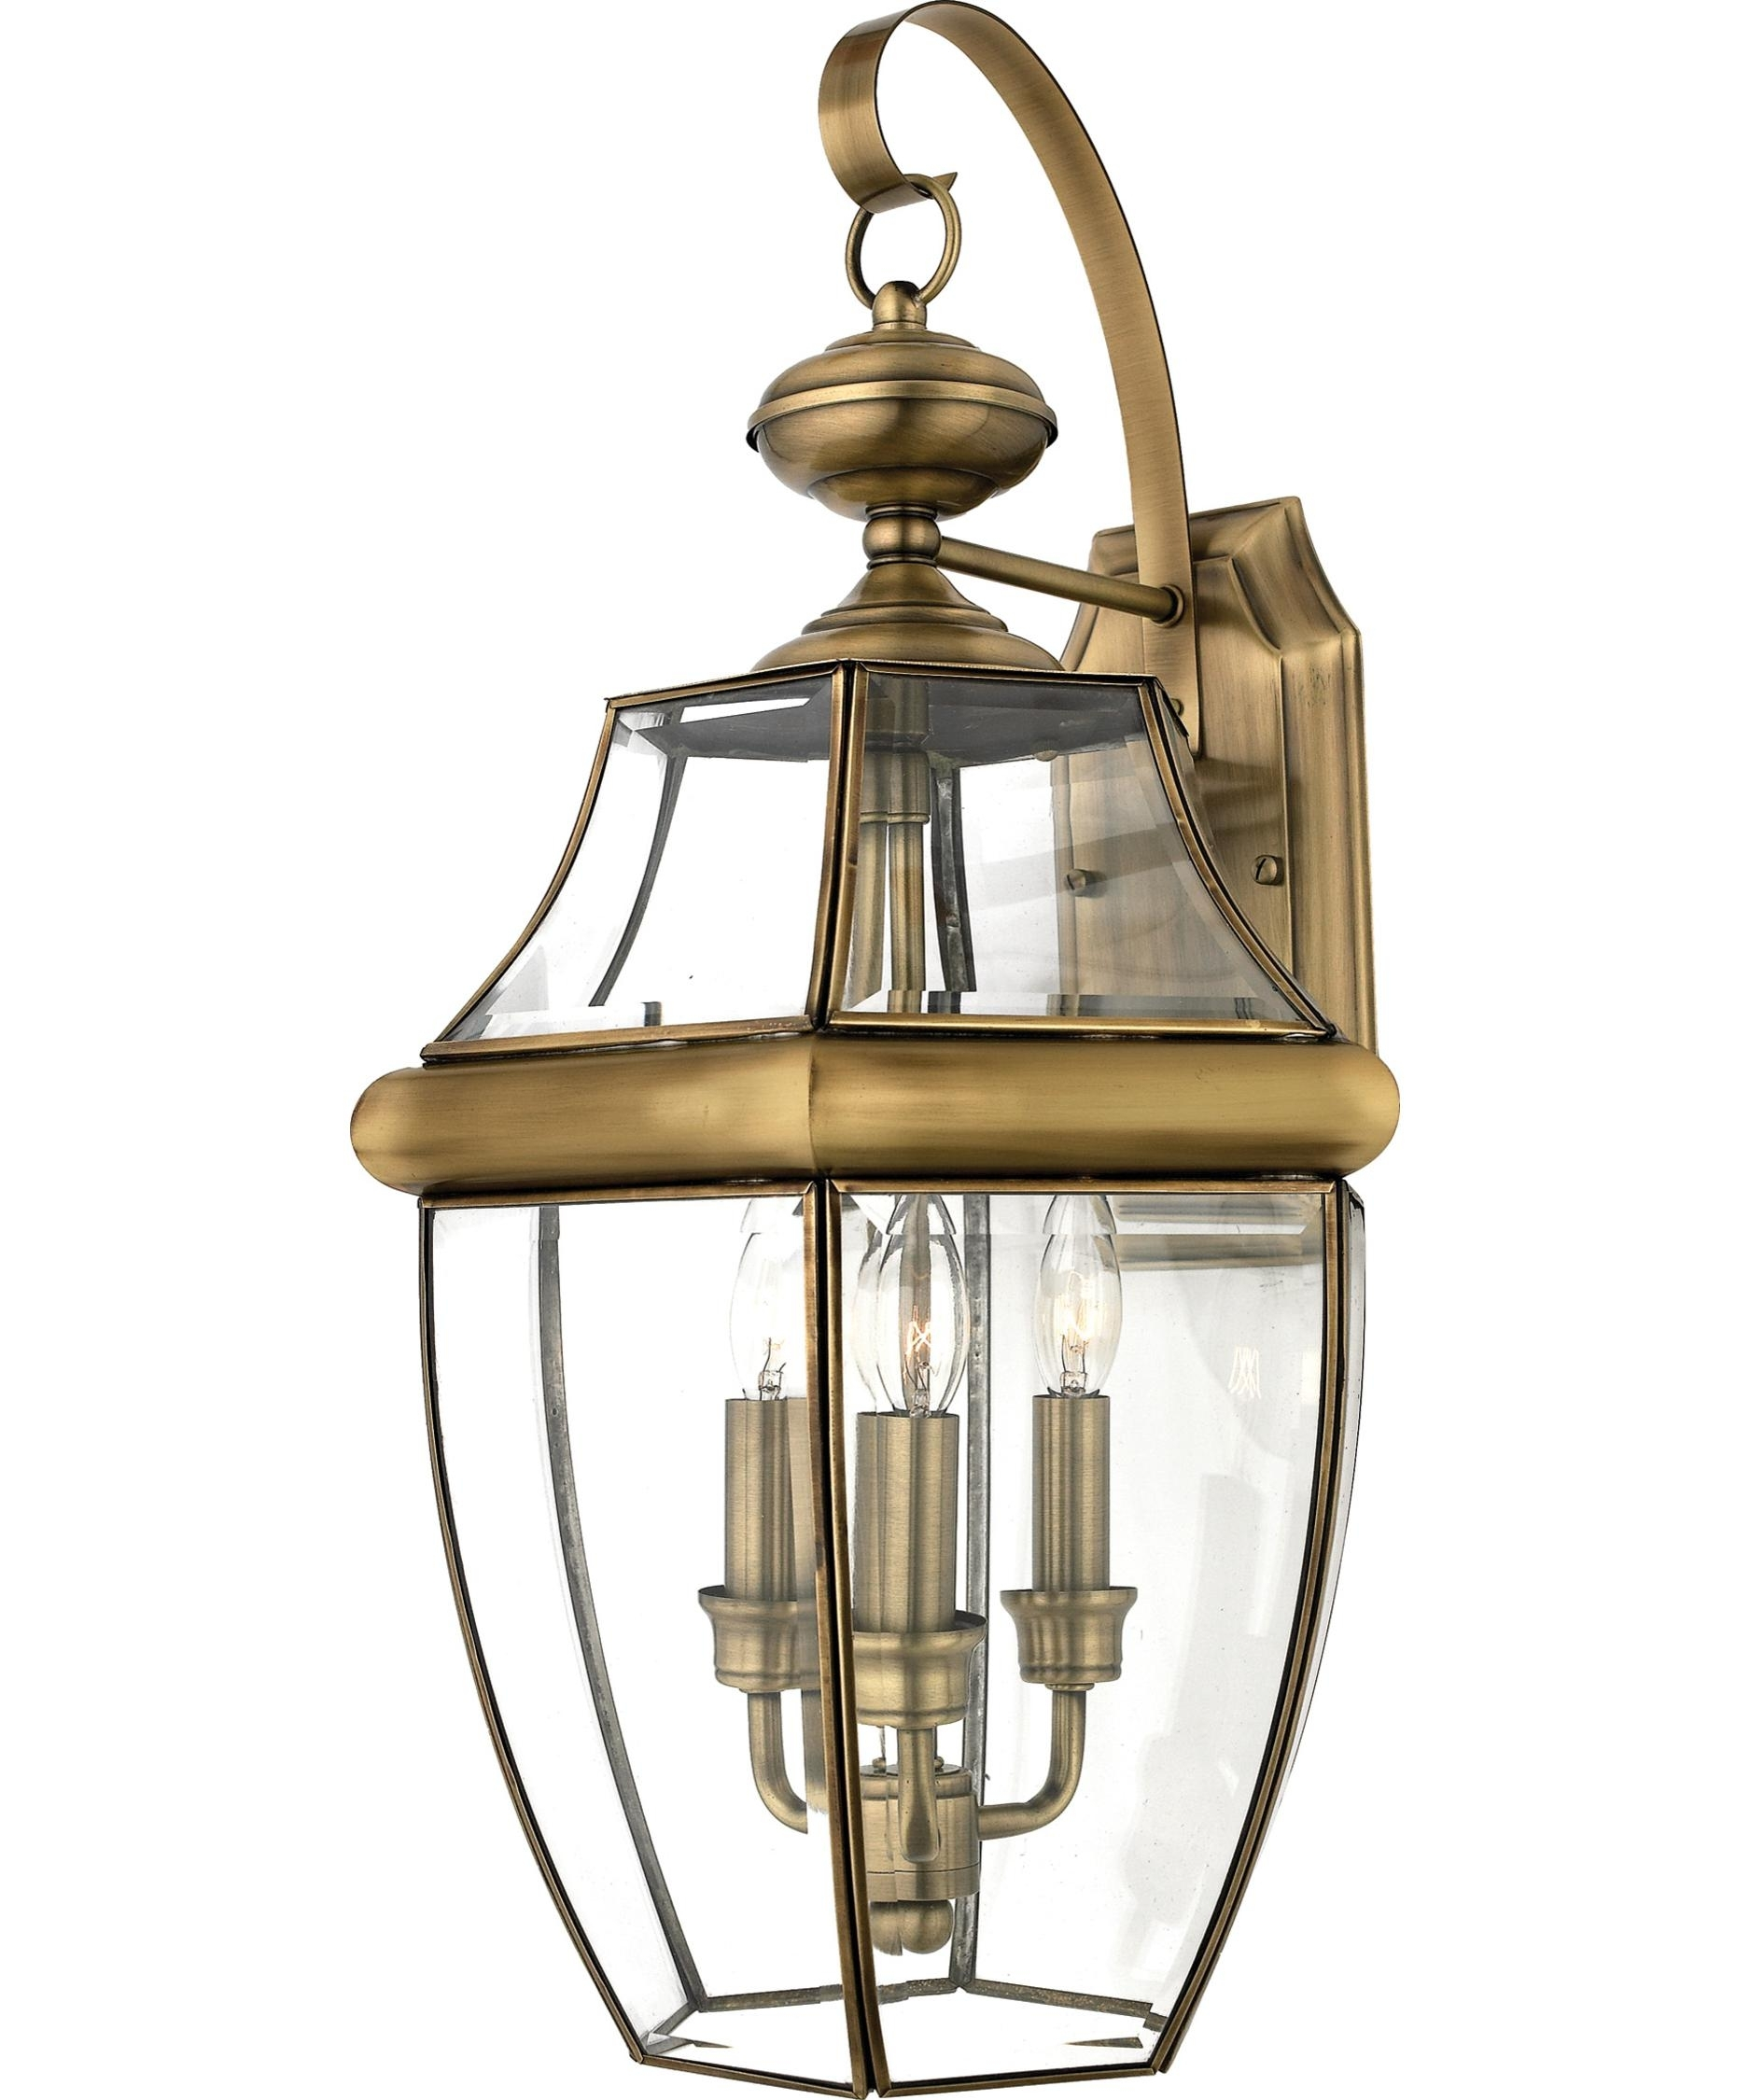 Inspiration about Quoizel Ny8318 Newbury 13 Inch Wide 3 Light Outdoor Wall Light Intended For Antique Outdoor Wall Lights (#15 of 15)